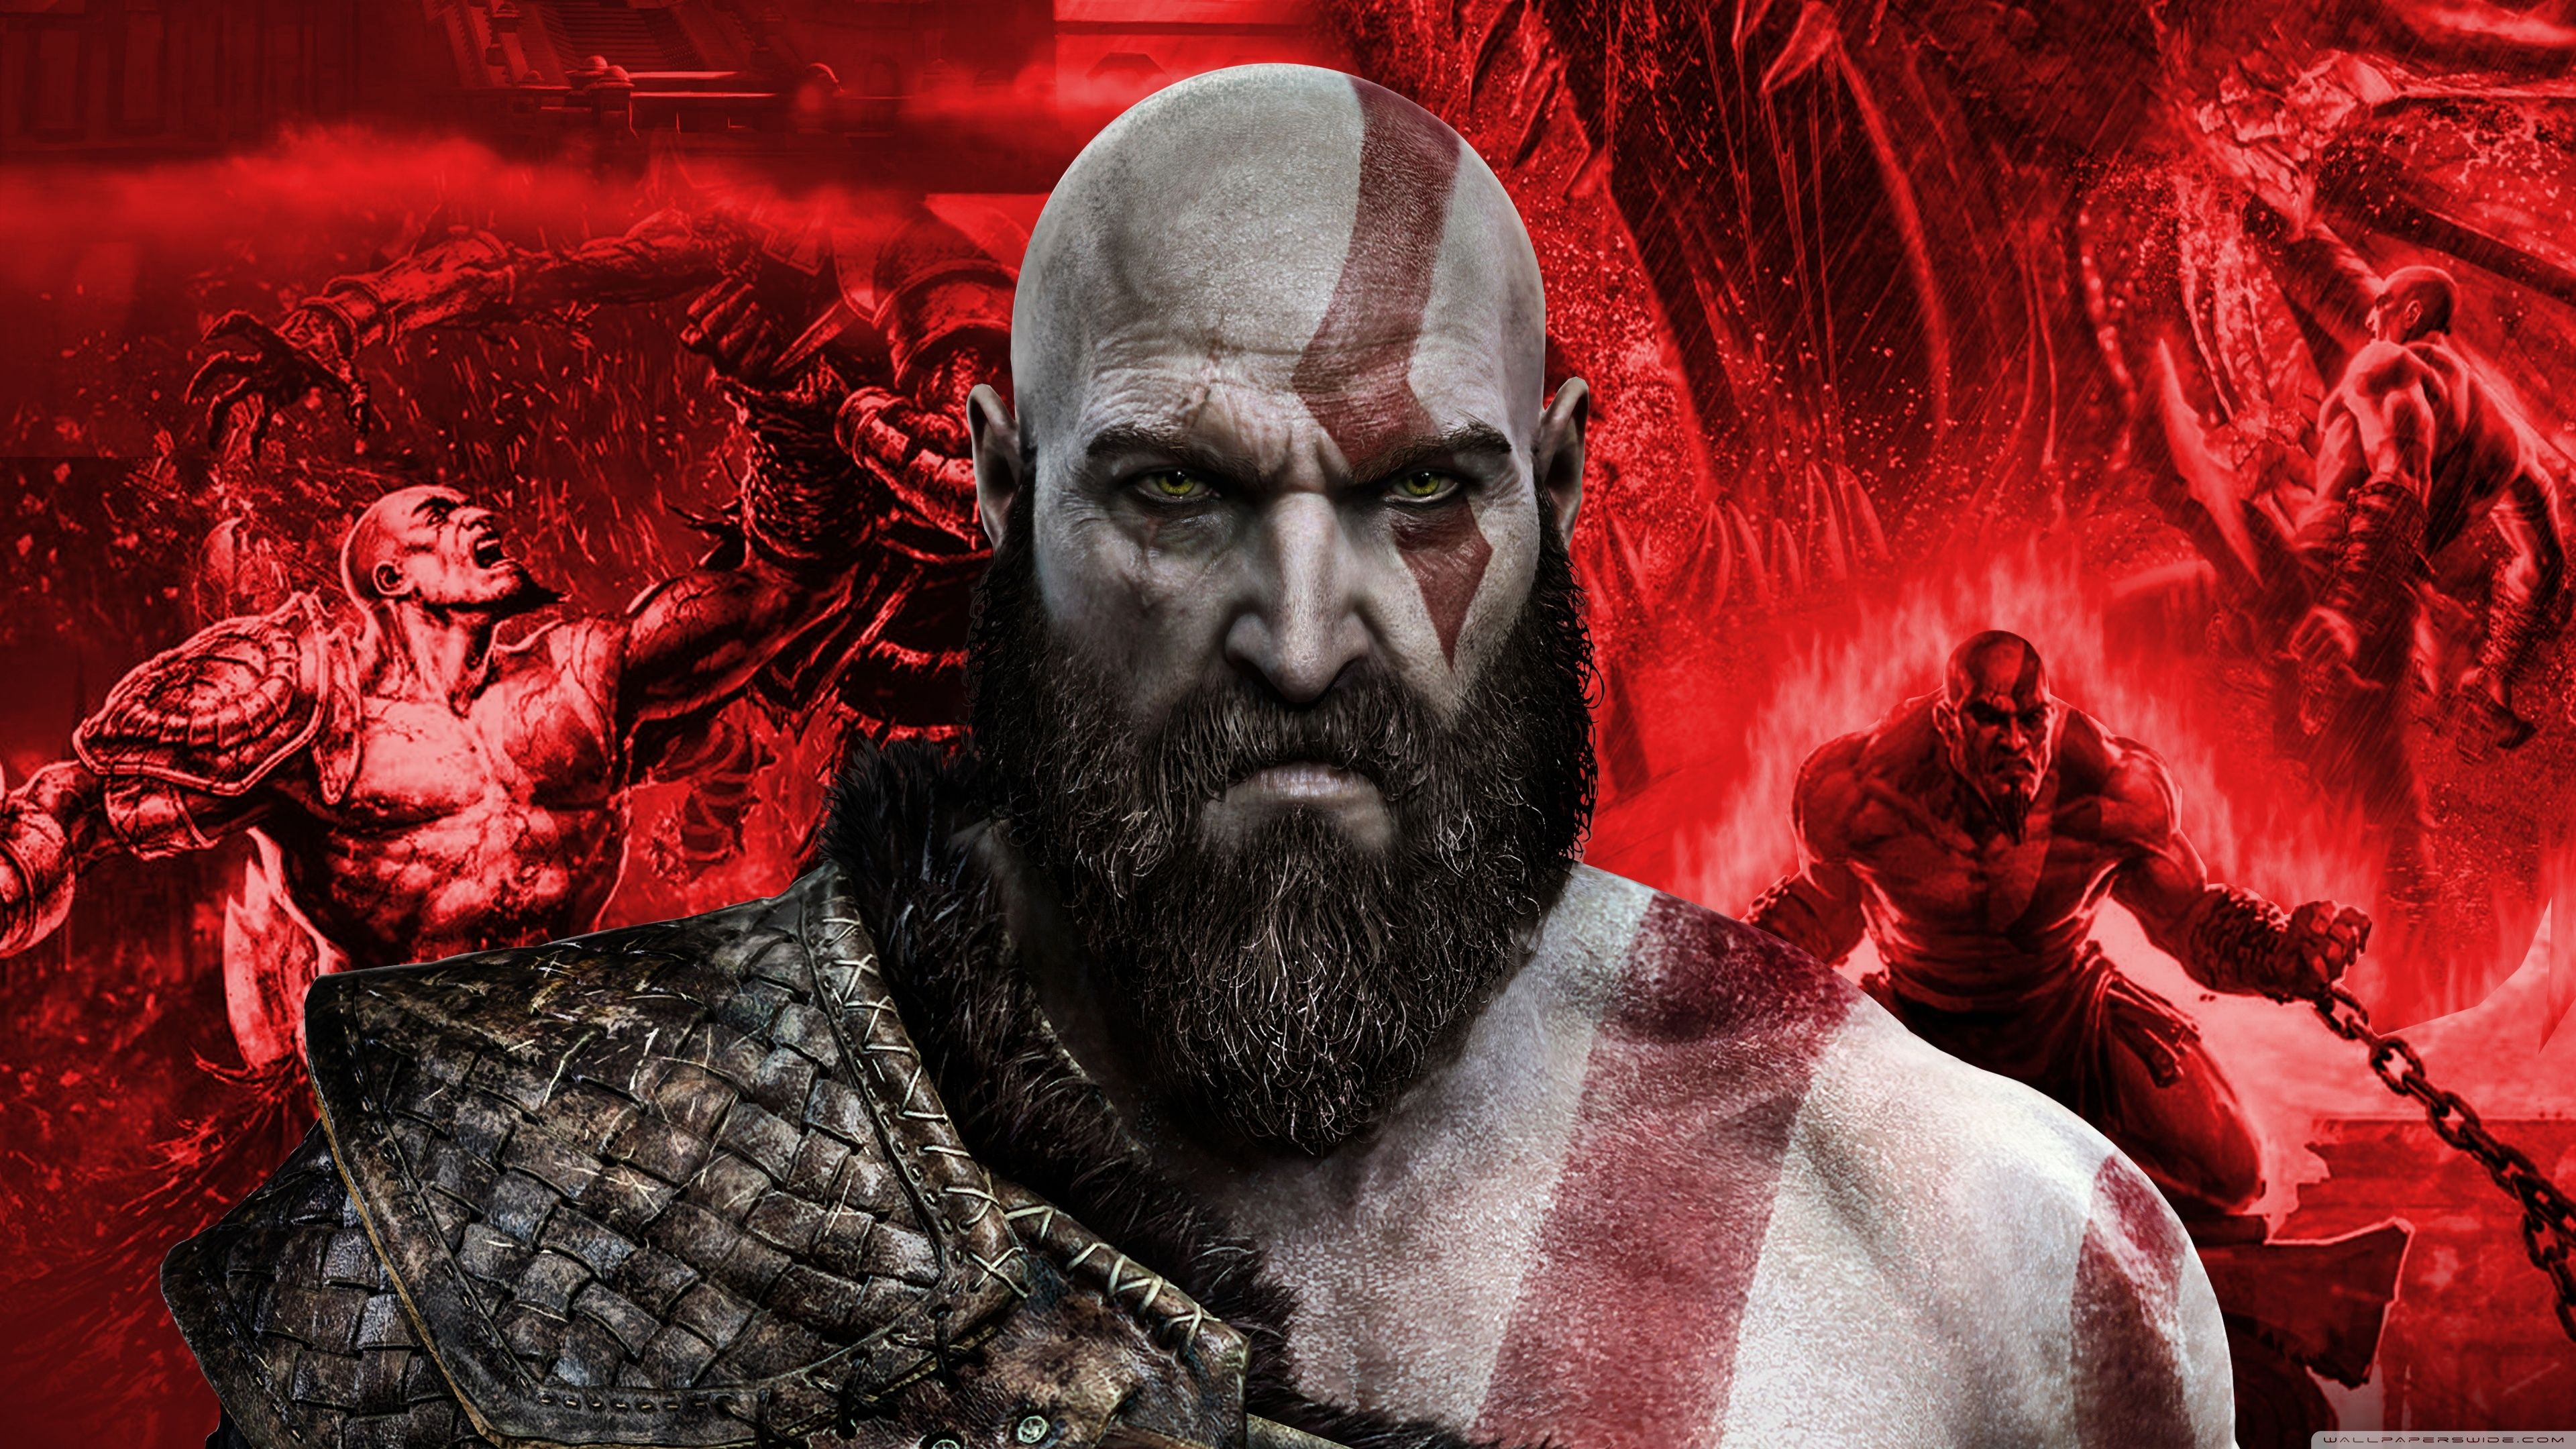 Best Of Kratos 4k Hd Desktop Wallpaper For 4k Ultra Hd God Of